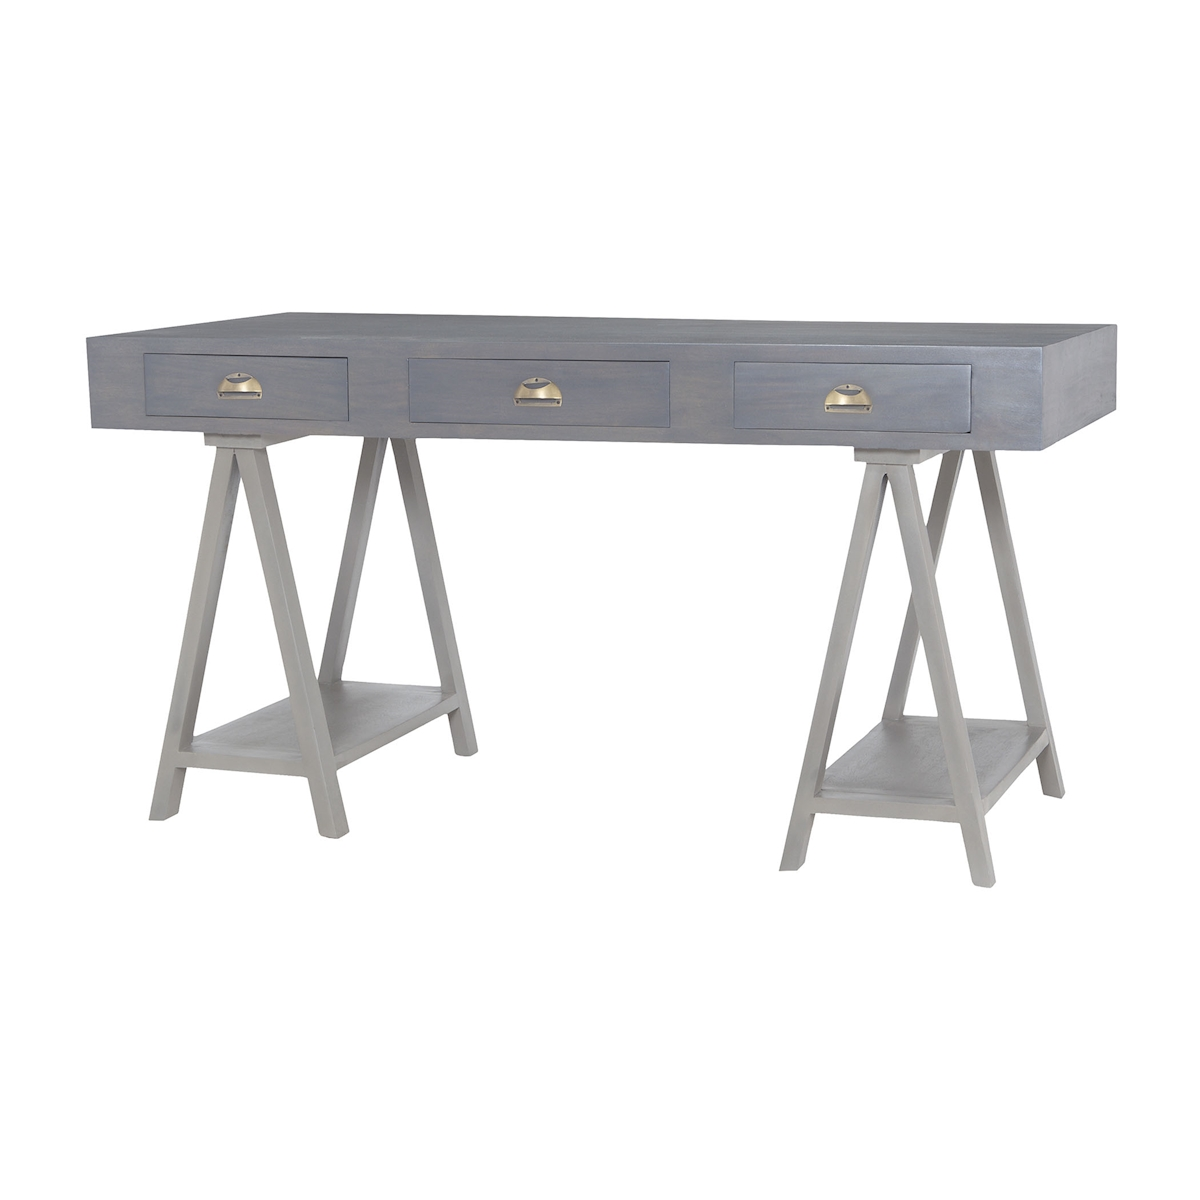 Huffman Desk in Antique Smoke and Grain De Bois Garden Gate | Elk Home